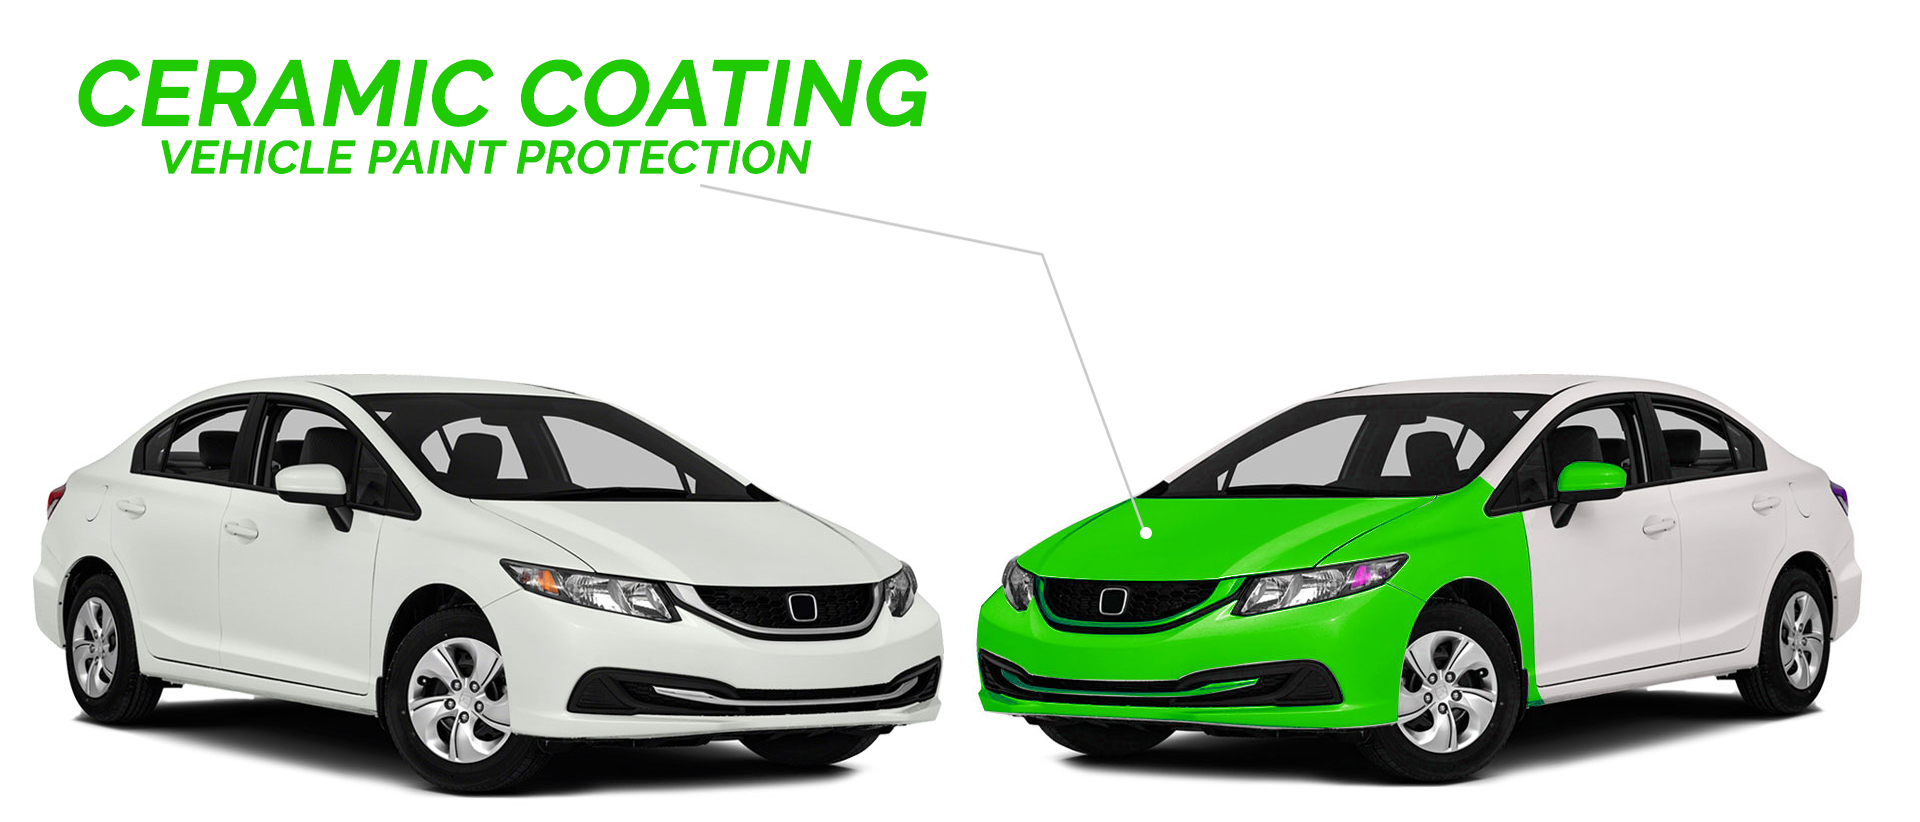 Vehicle Paint Protection Services in Delaware